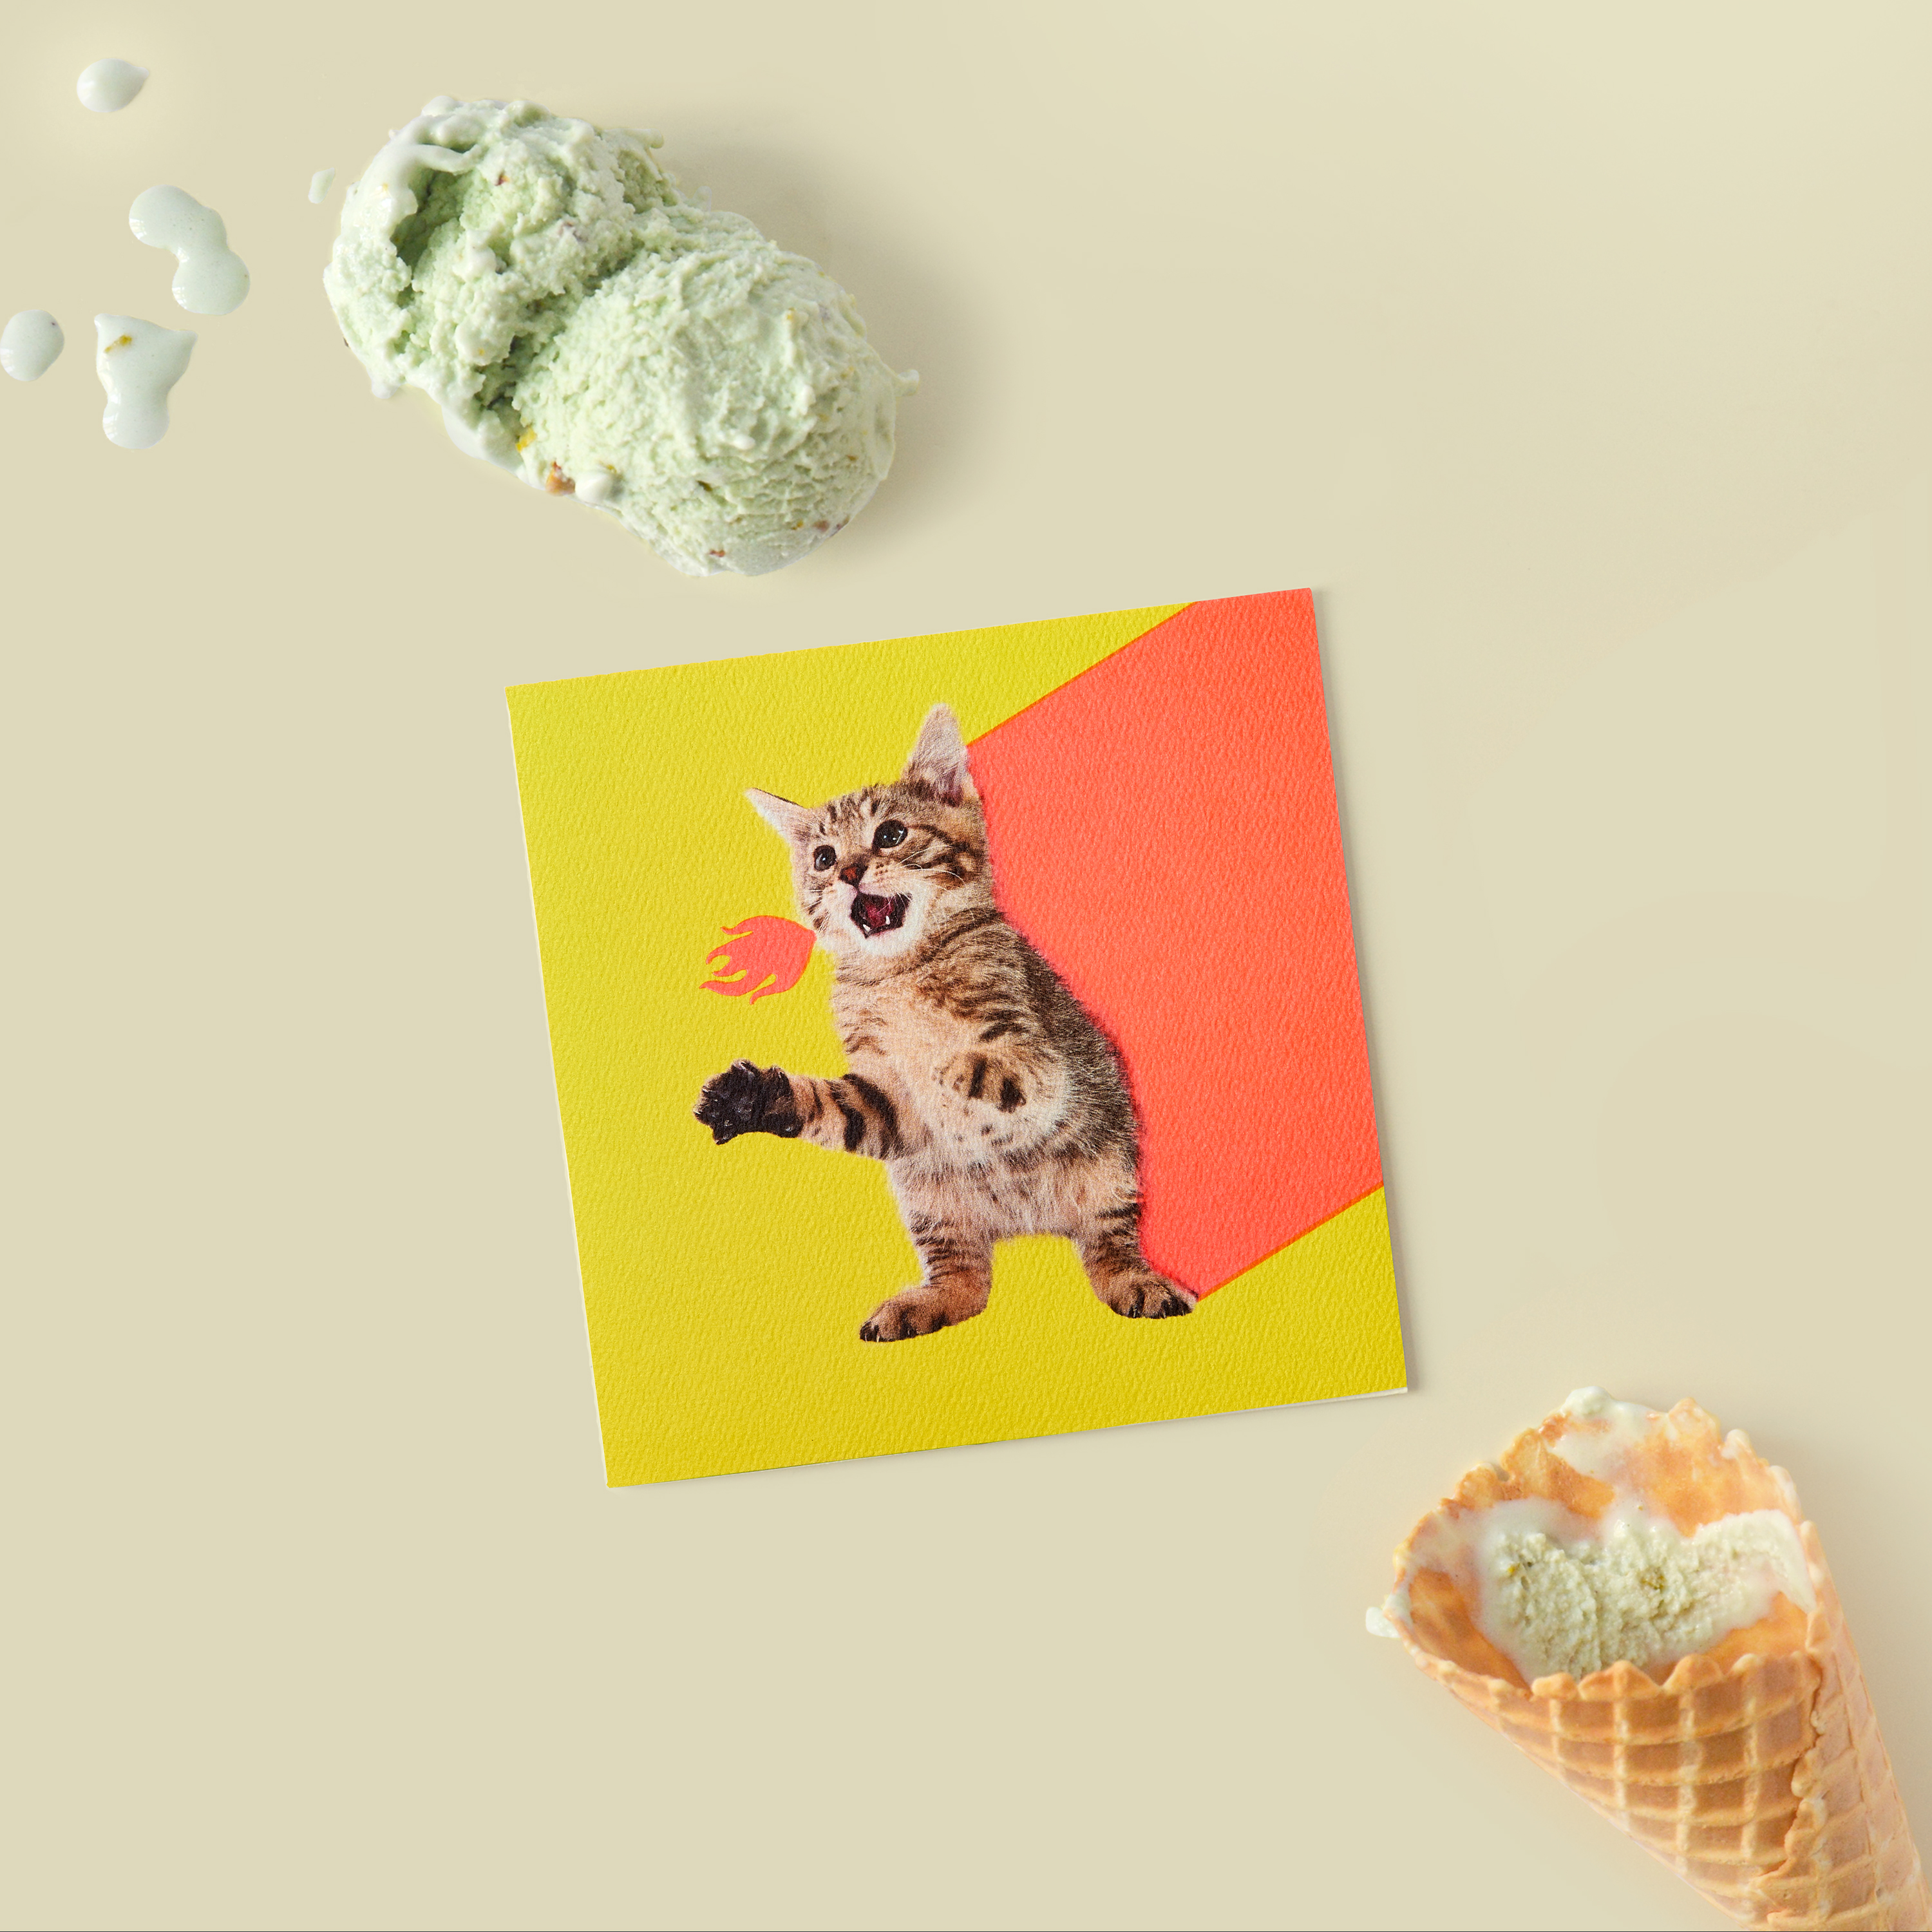 Kitten Blank Card - Birthday, Friendship, Thinking of You image